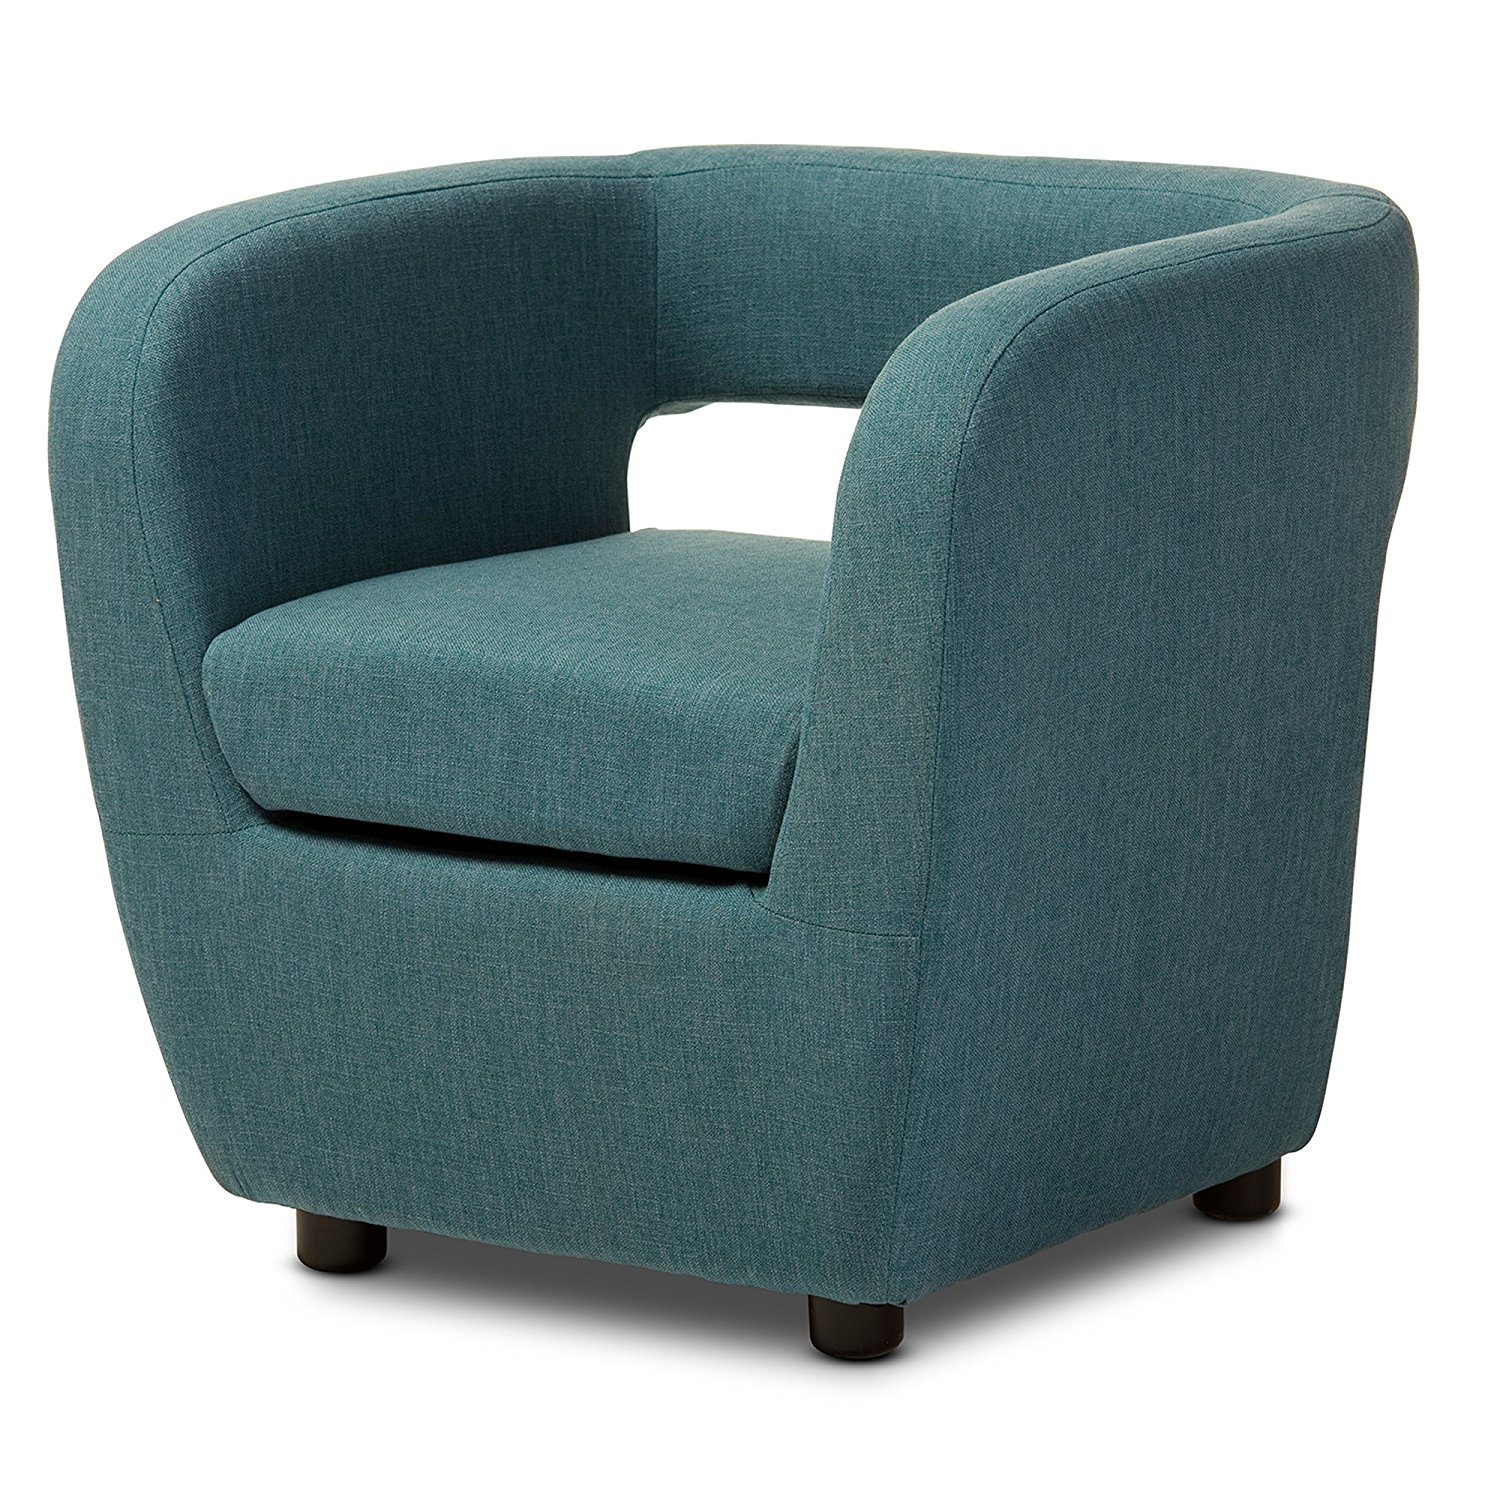 Cheap Accent Chair Blue Find Accent Chair Blue Deals On